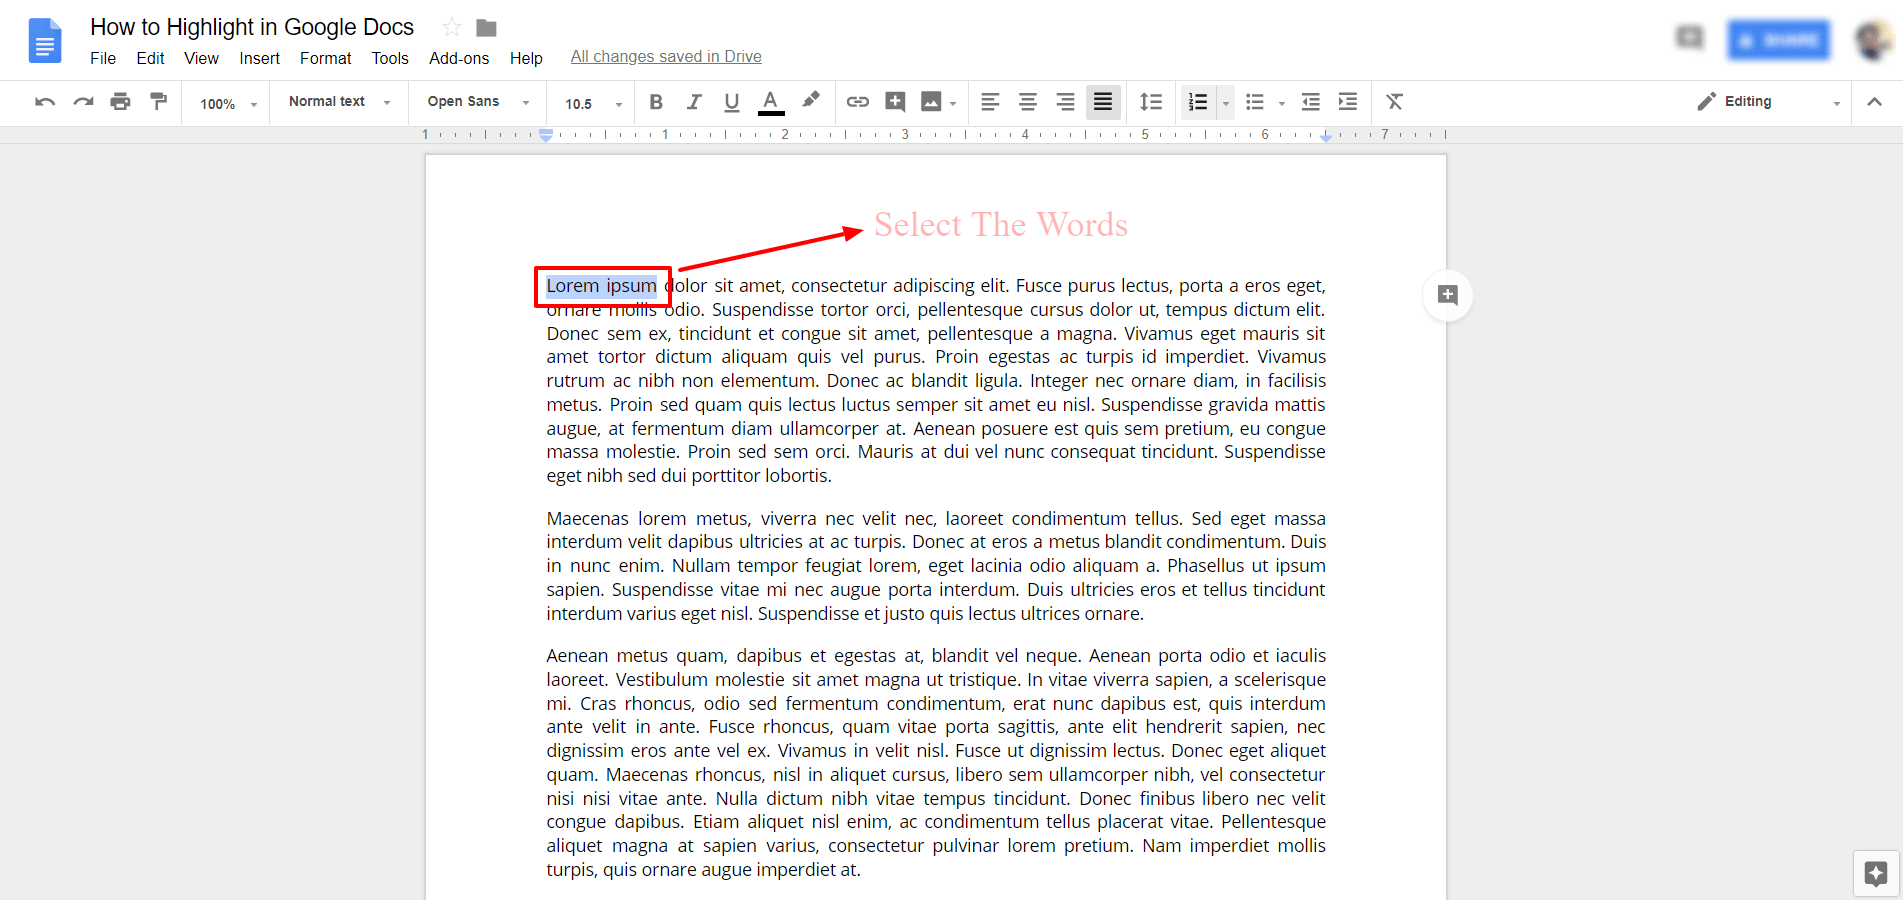 Select The Words in Google Docs